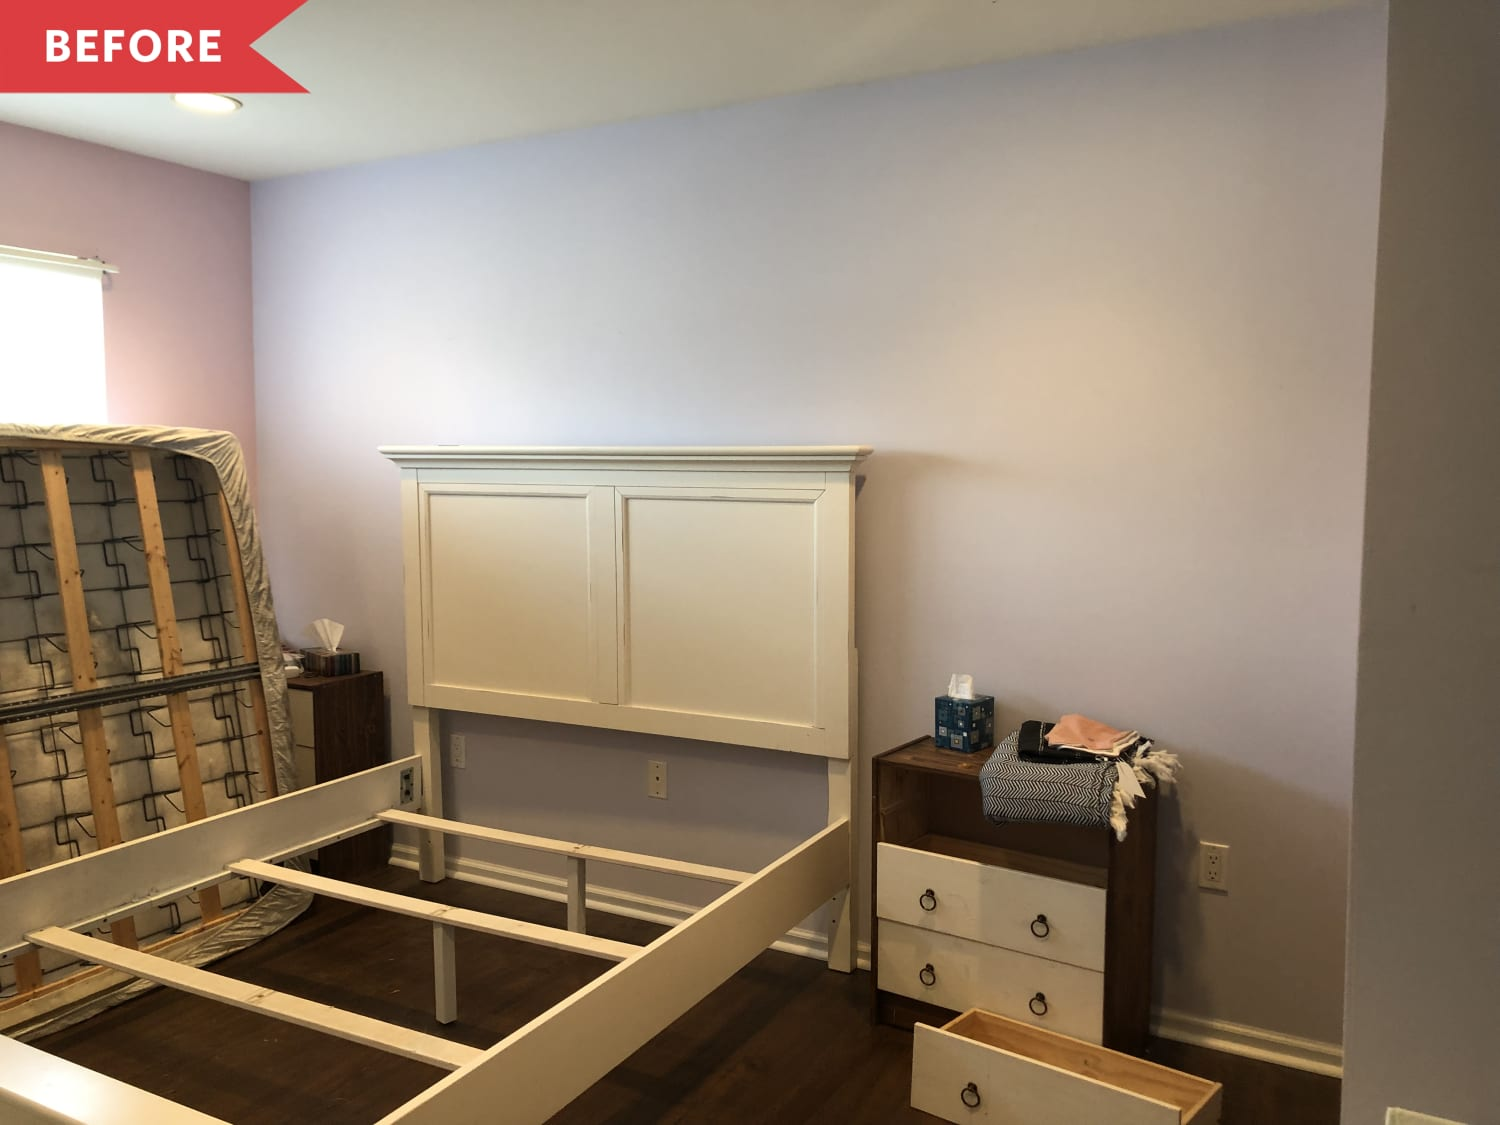 Before and After: This $500 Bedroom Redo Has The Easiest-Ever Gallery Wall Trick